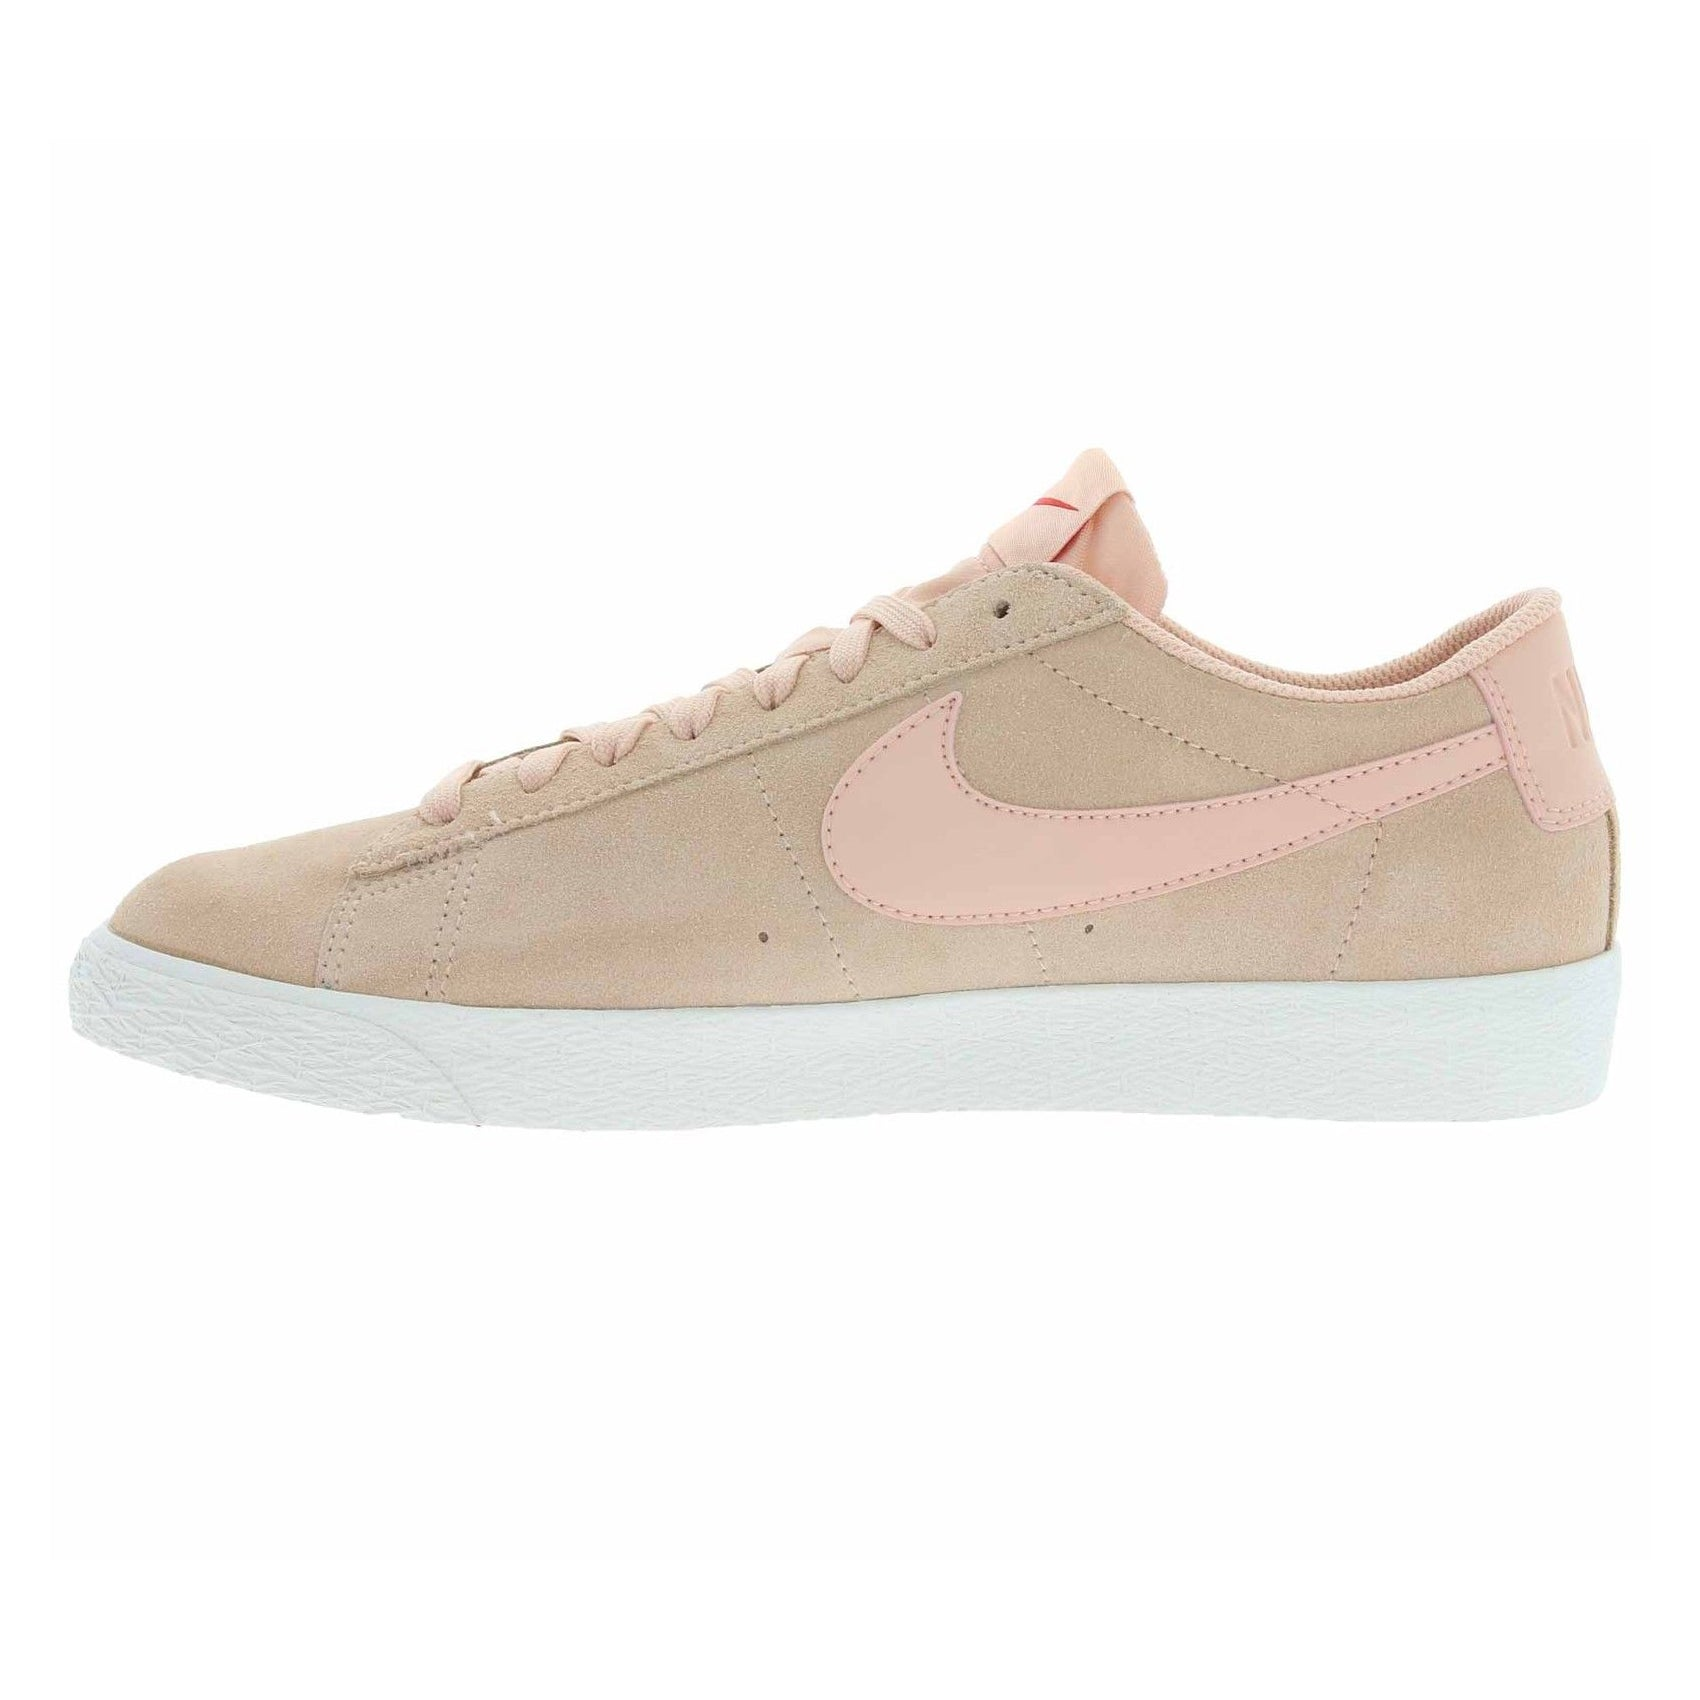 uk availability 34873 33b2a NIKE BLAZER LOW (801) – AtEaze